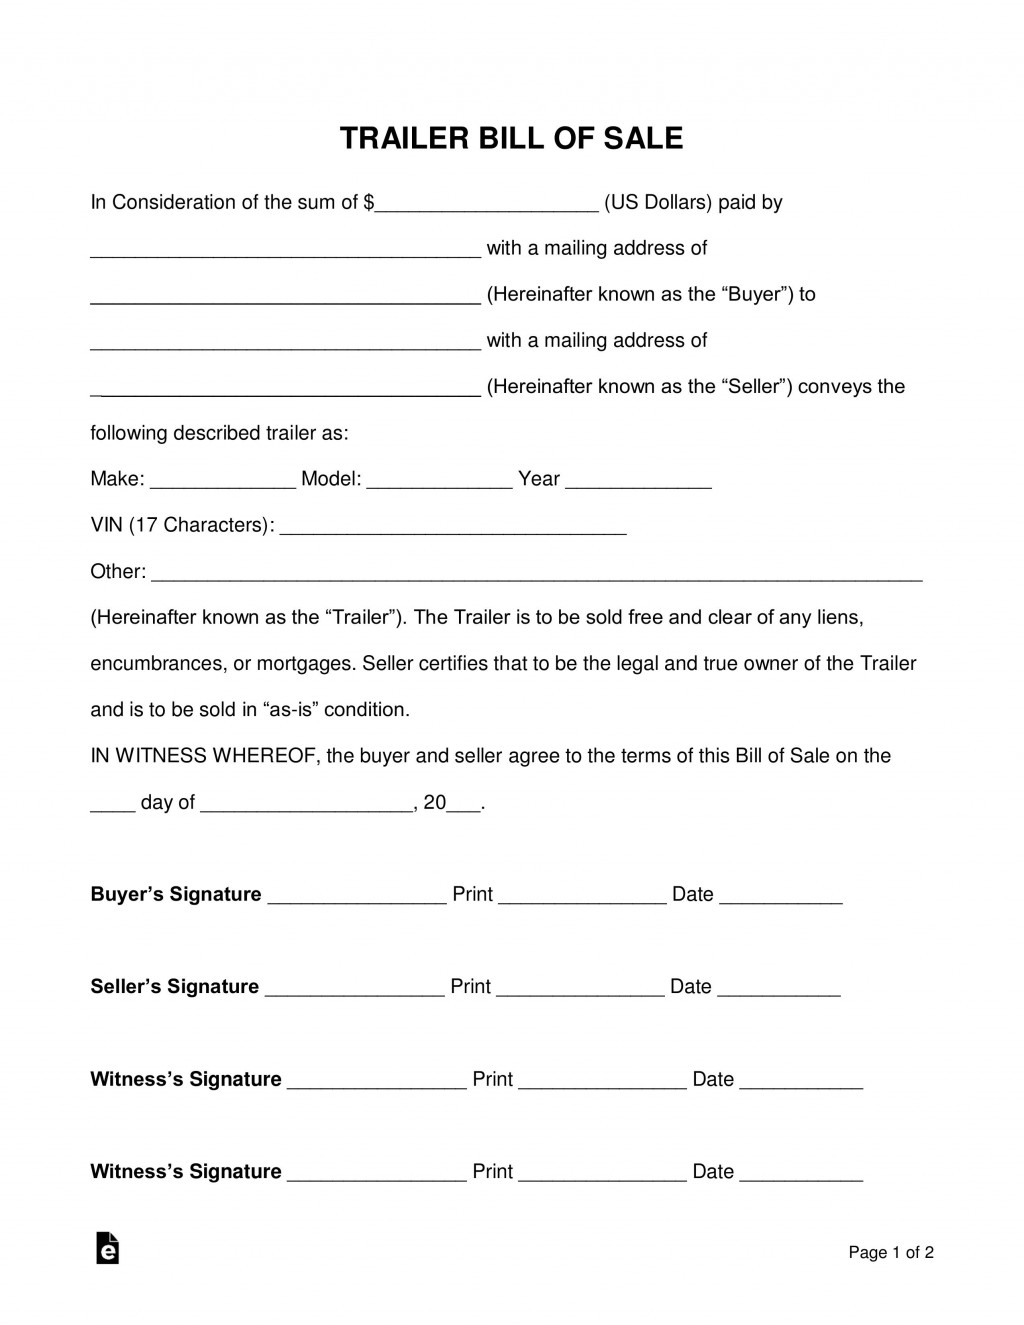 007 Rare Bill Of Sale Texa Template High Def  Motor Vehicle Form Free PrintableLarge